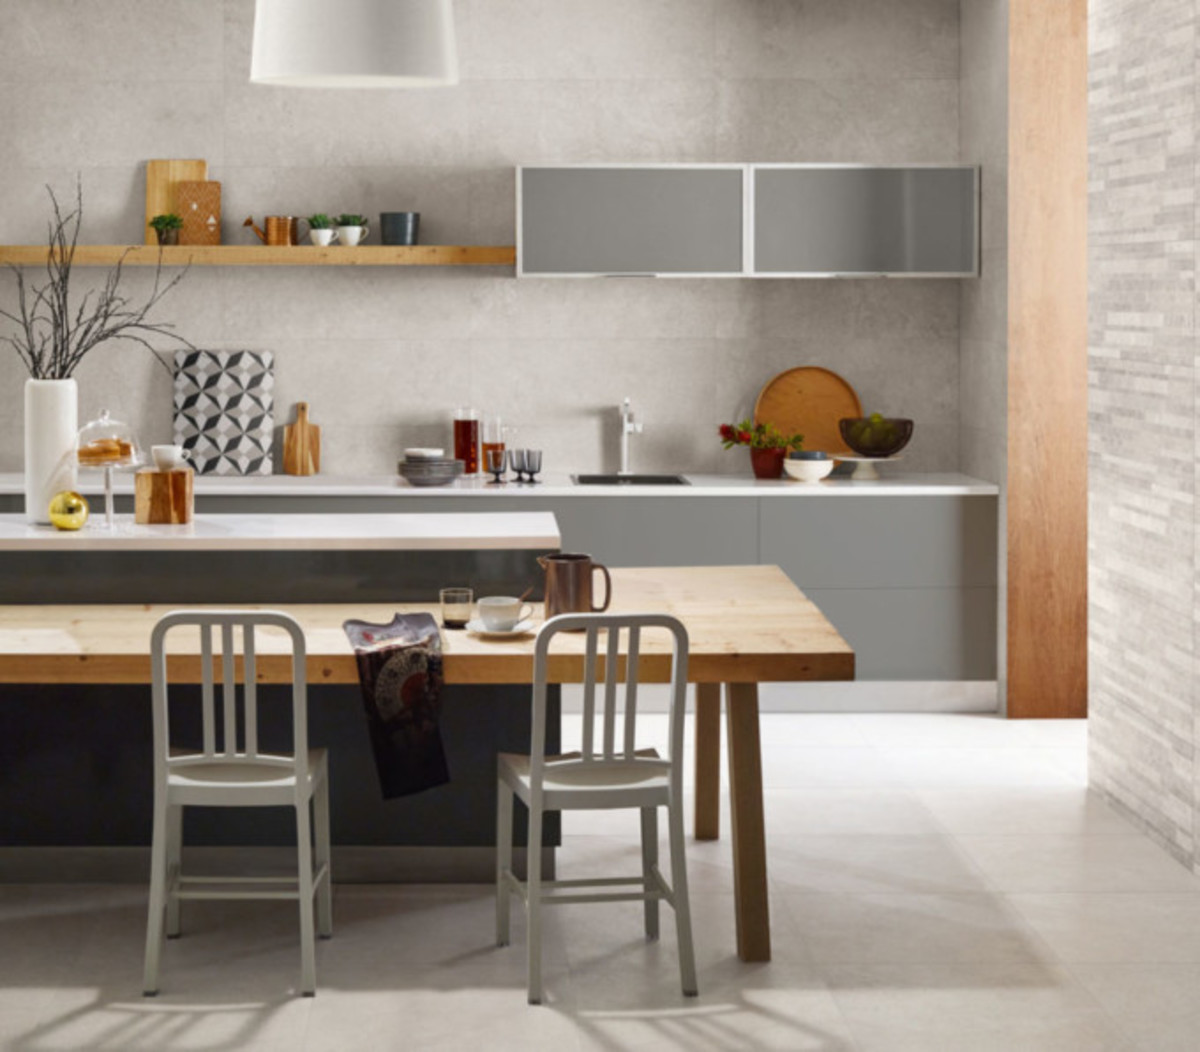 Silver is an excellent color to use in the Virgo kitchen.